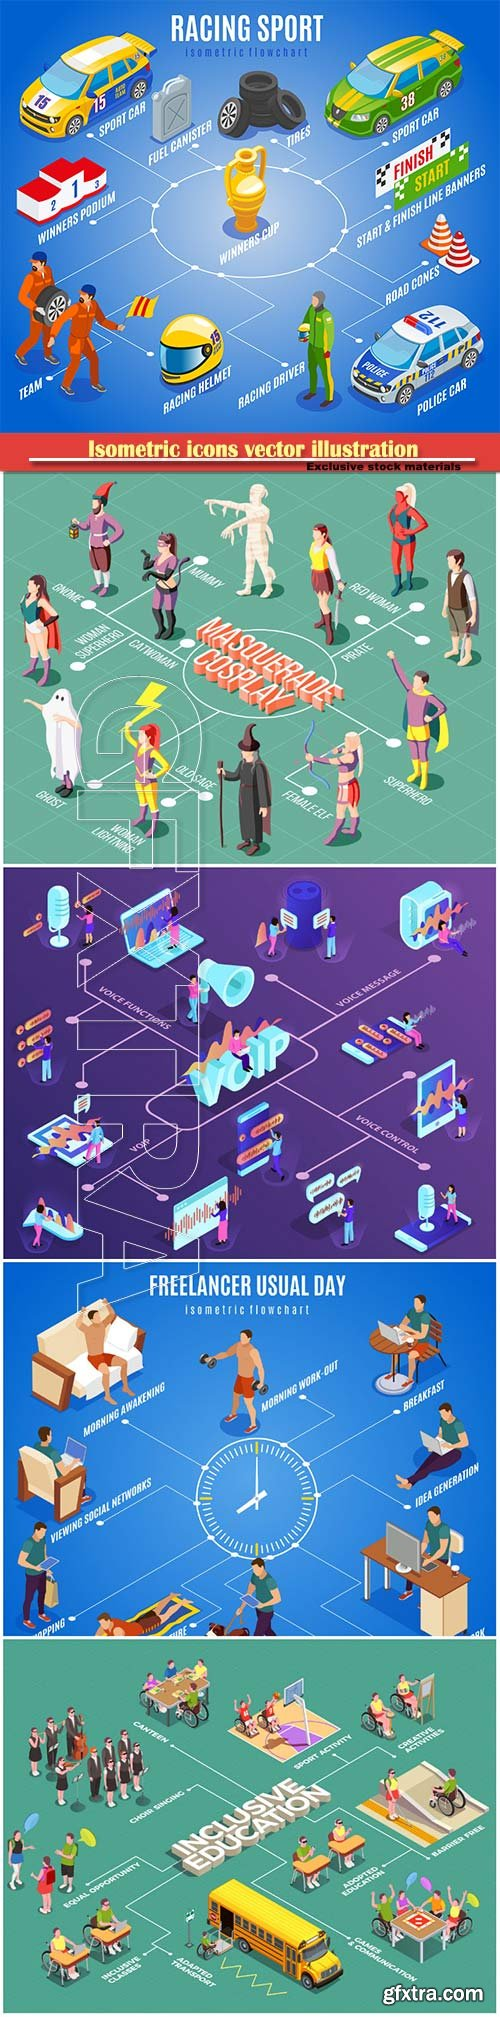 Isometric icons vector illustration, banner design template # 16